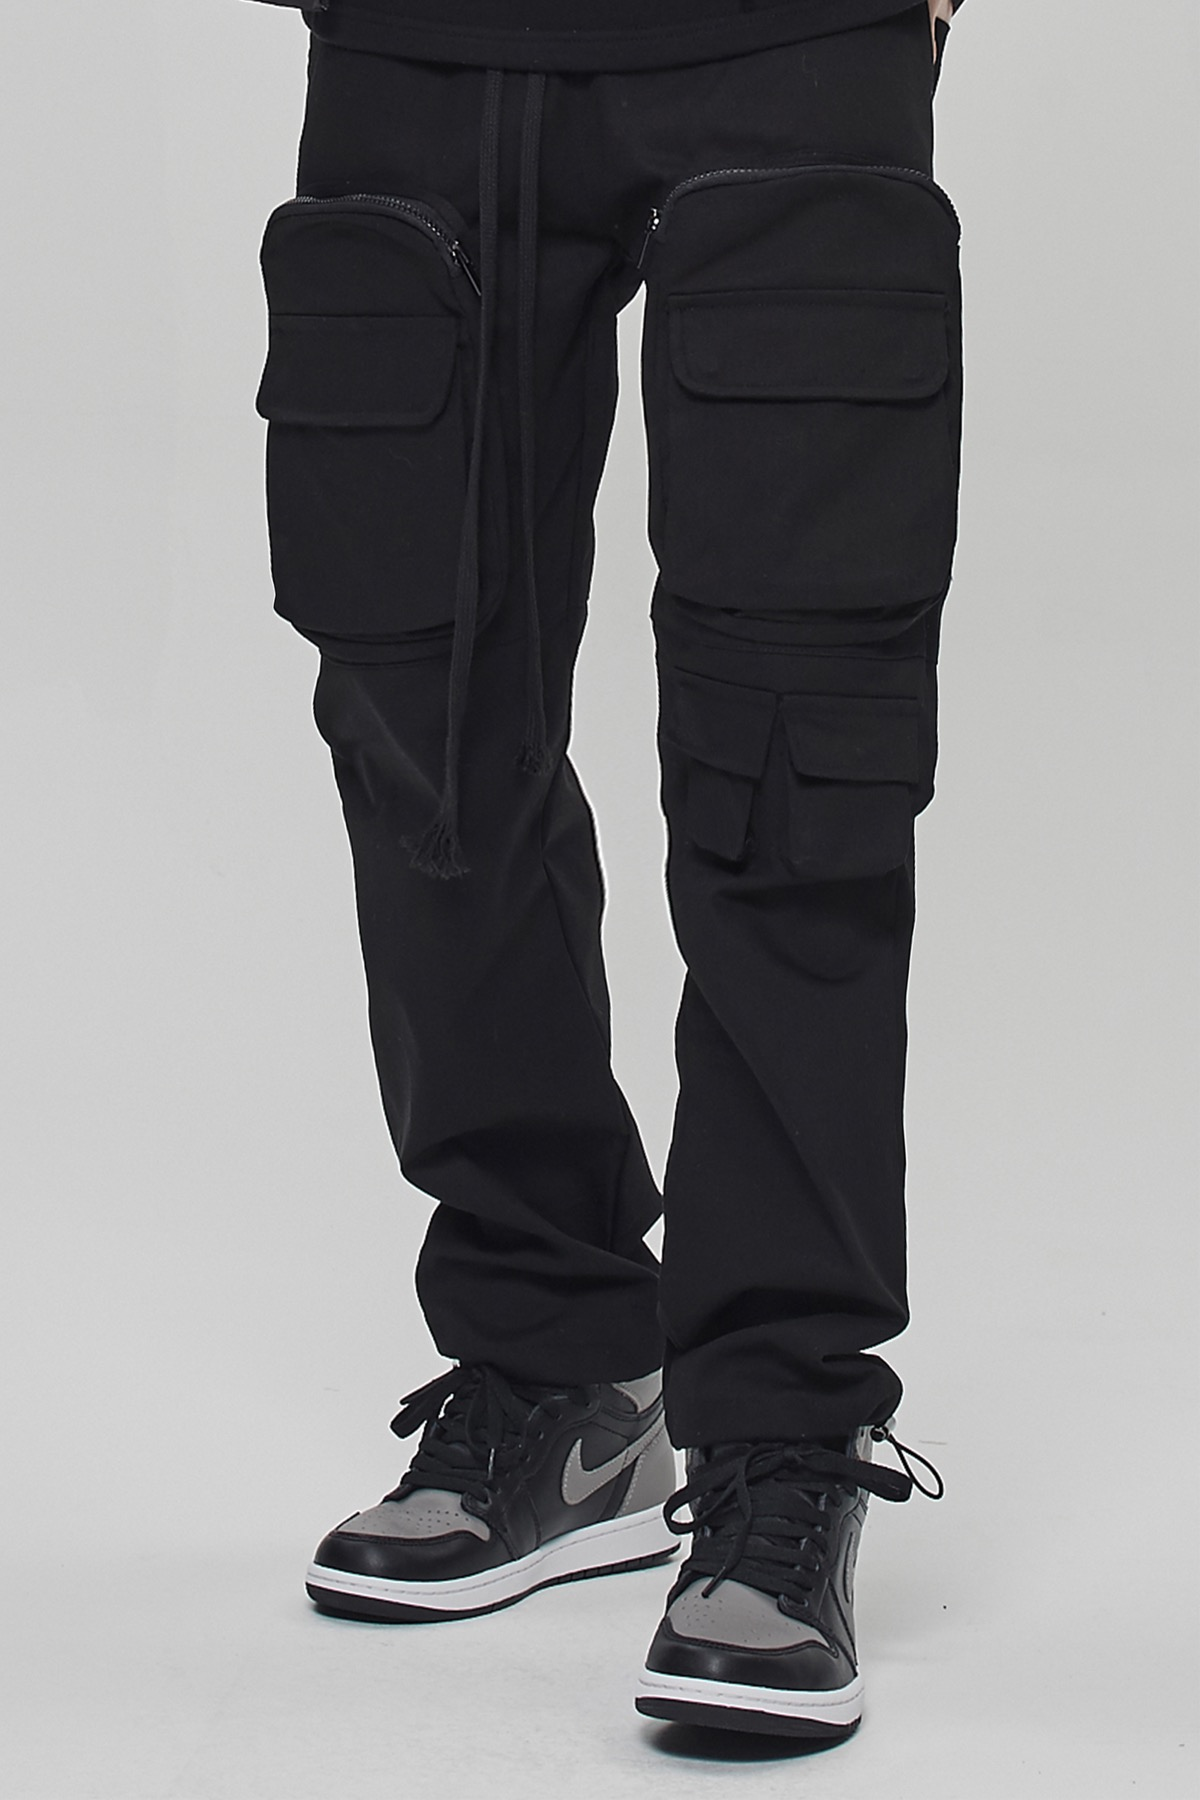 BLACK UTILITY POCKET CARGO STRING PANTS